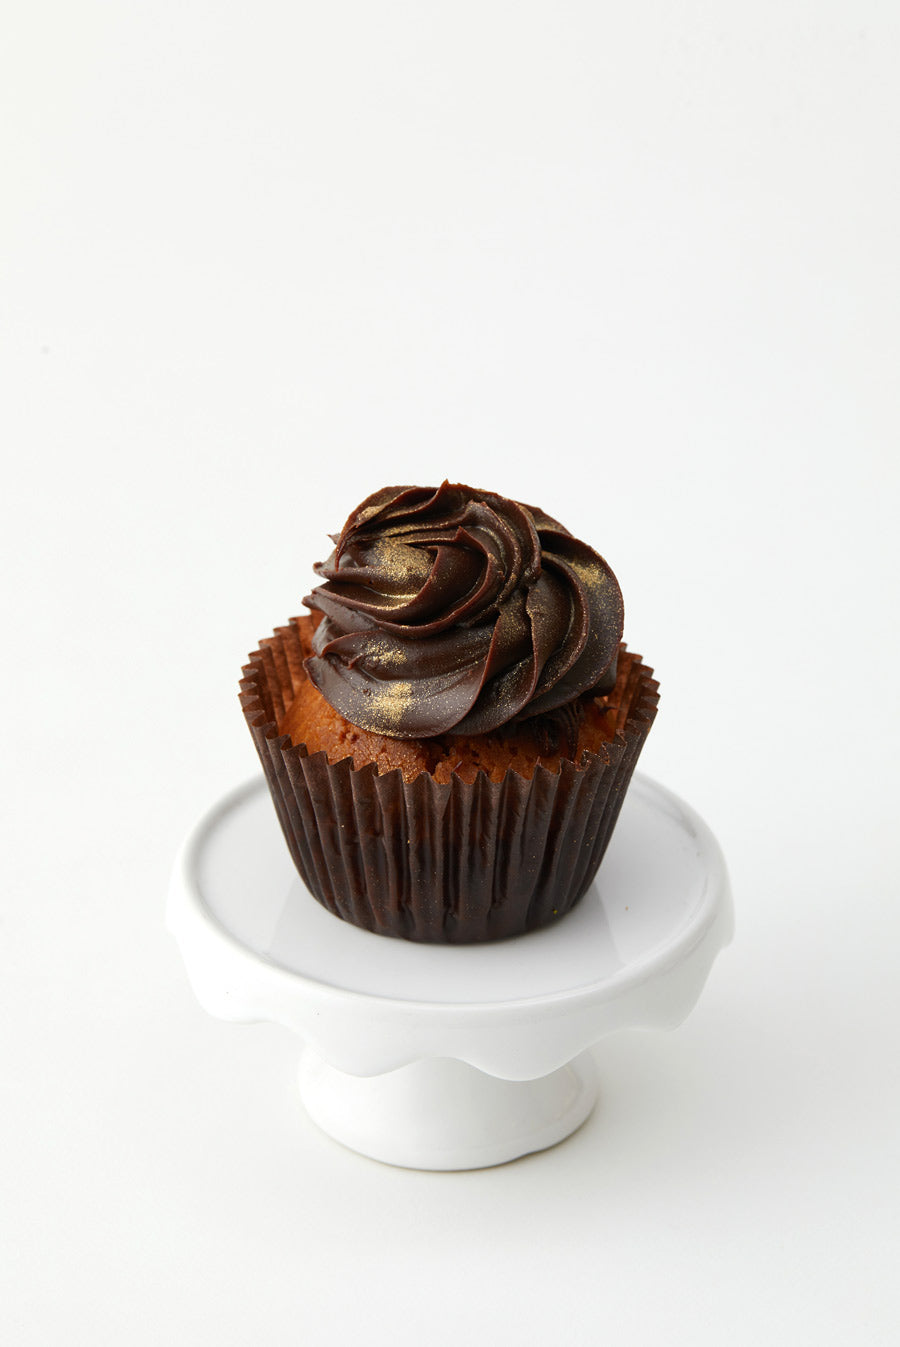 Vegan Banana Cupcake with Chocolate Fudge Ganache